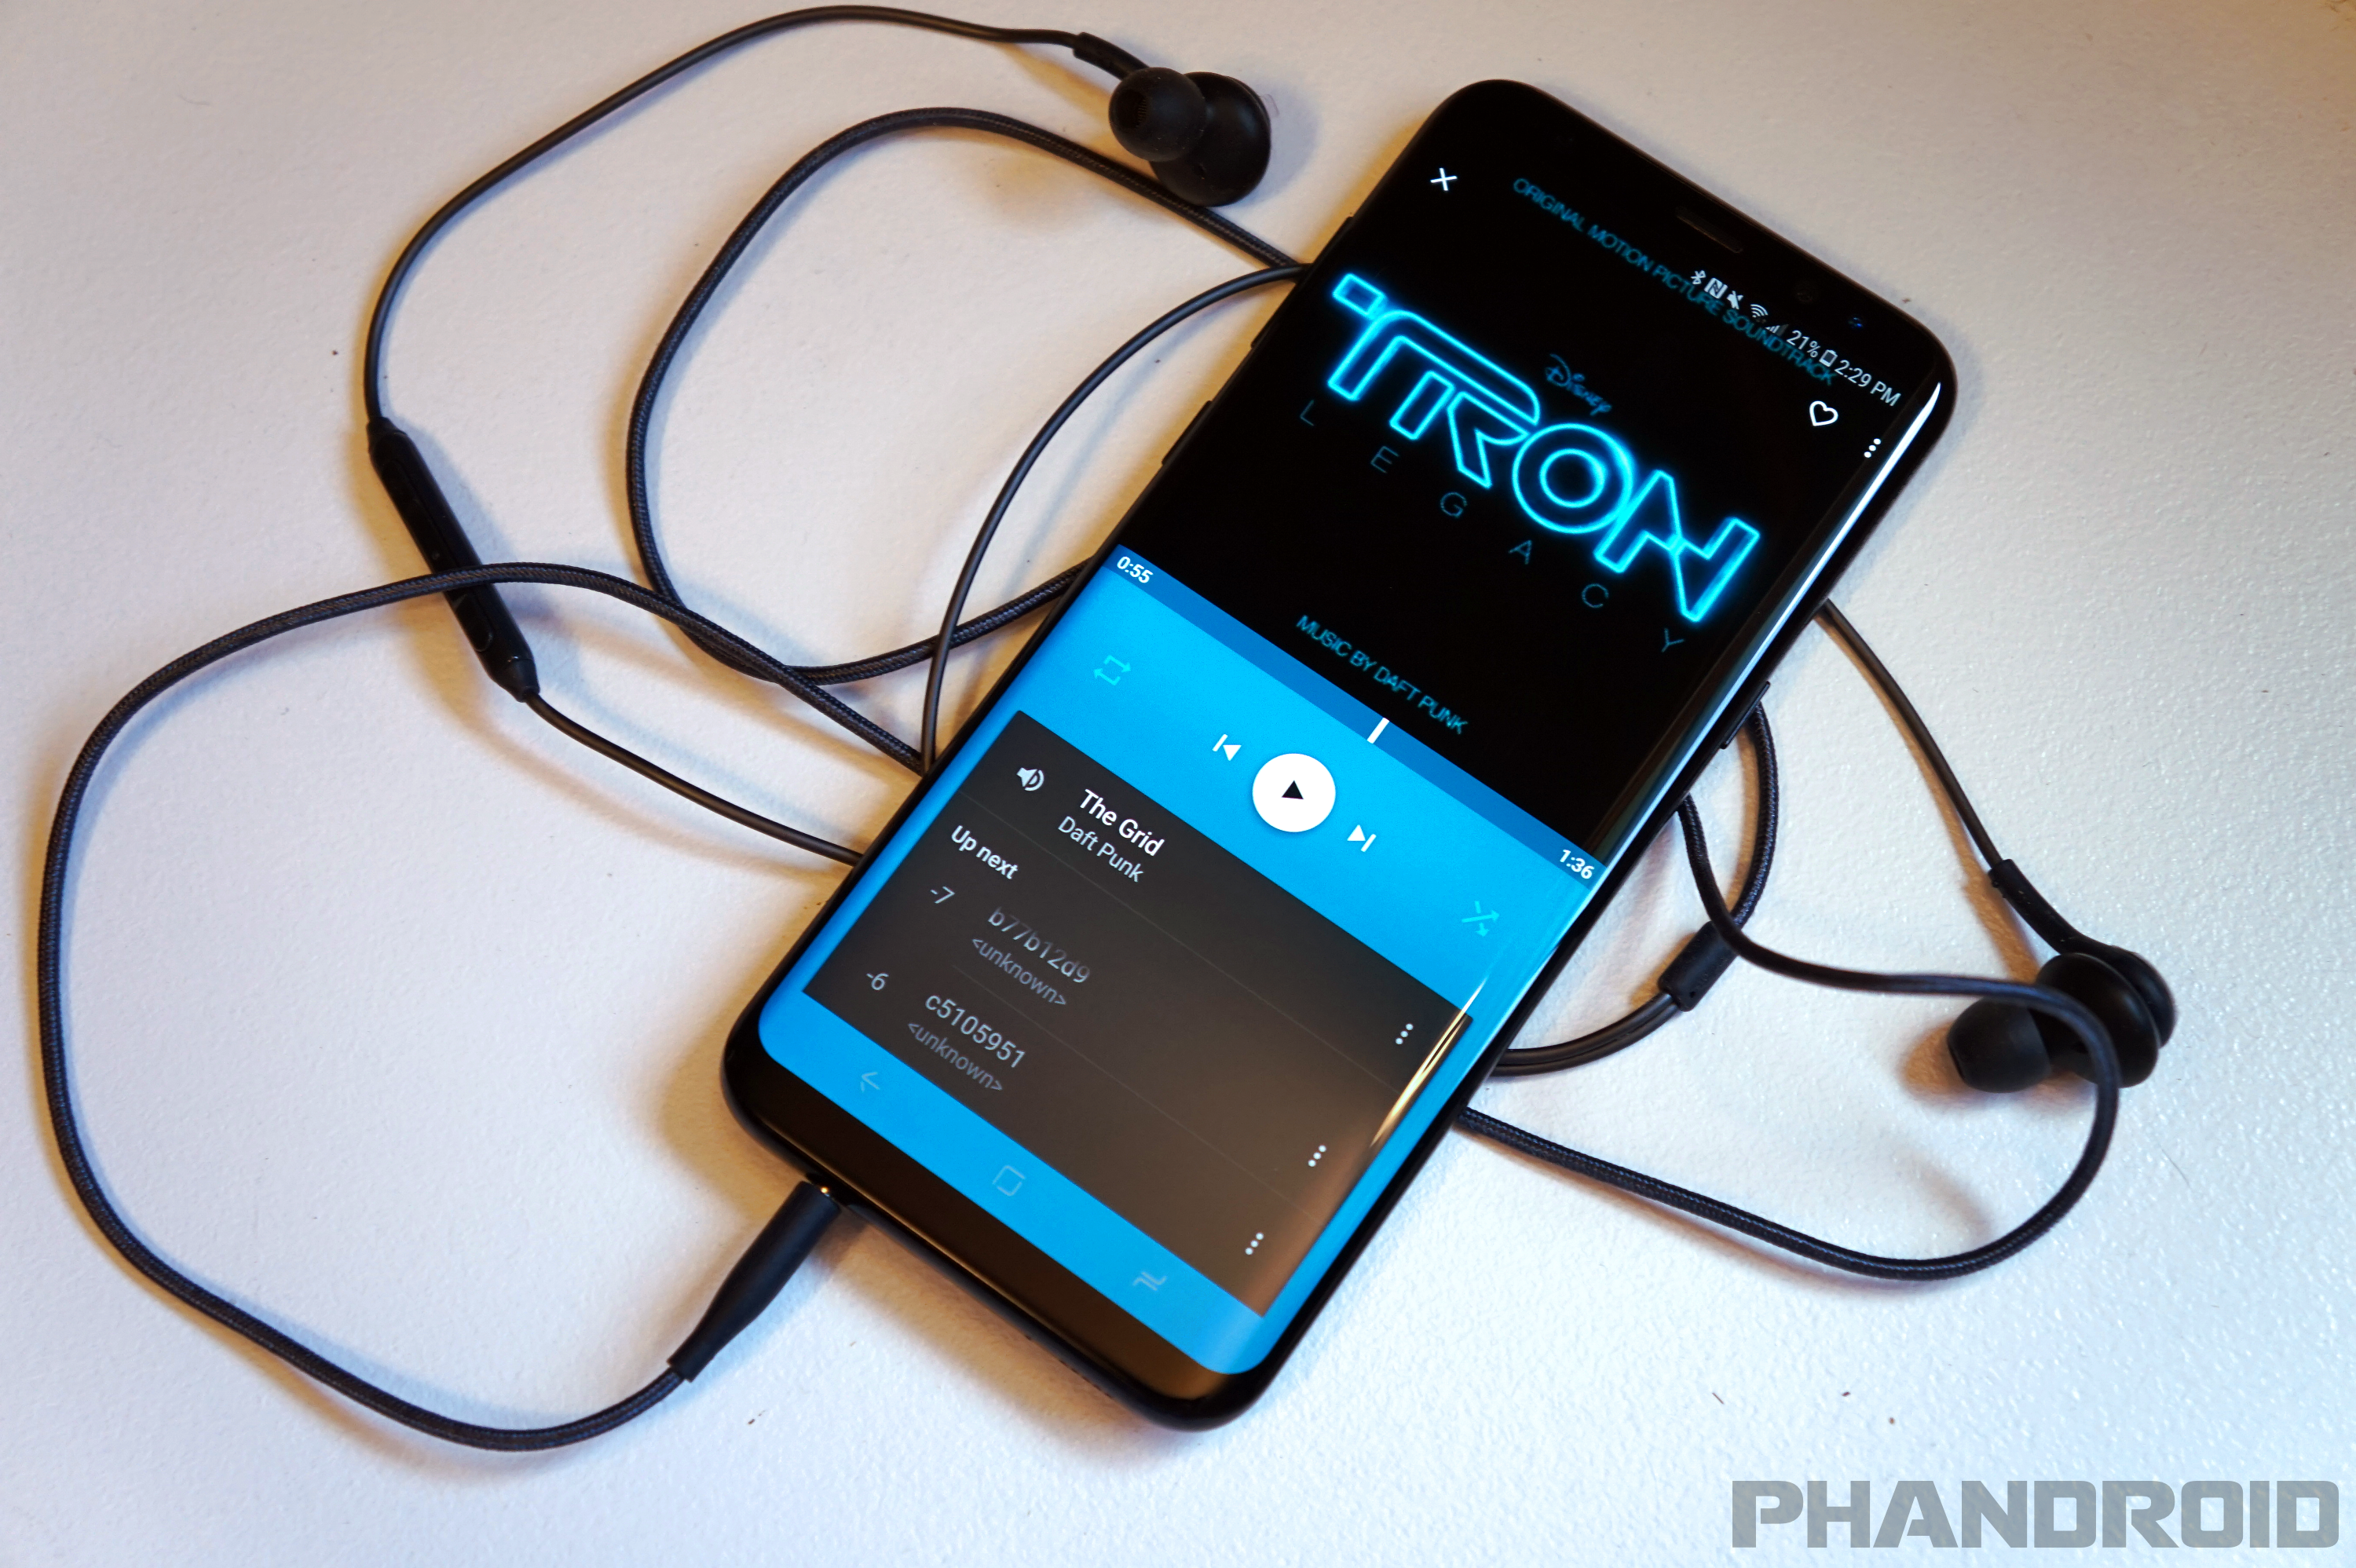 The Best Free Music Apps for Your Smartphone